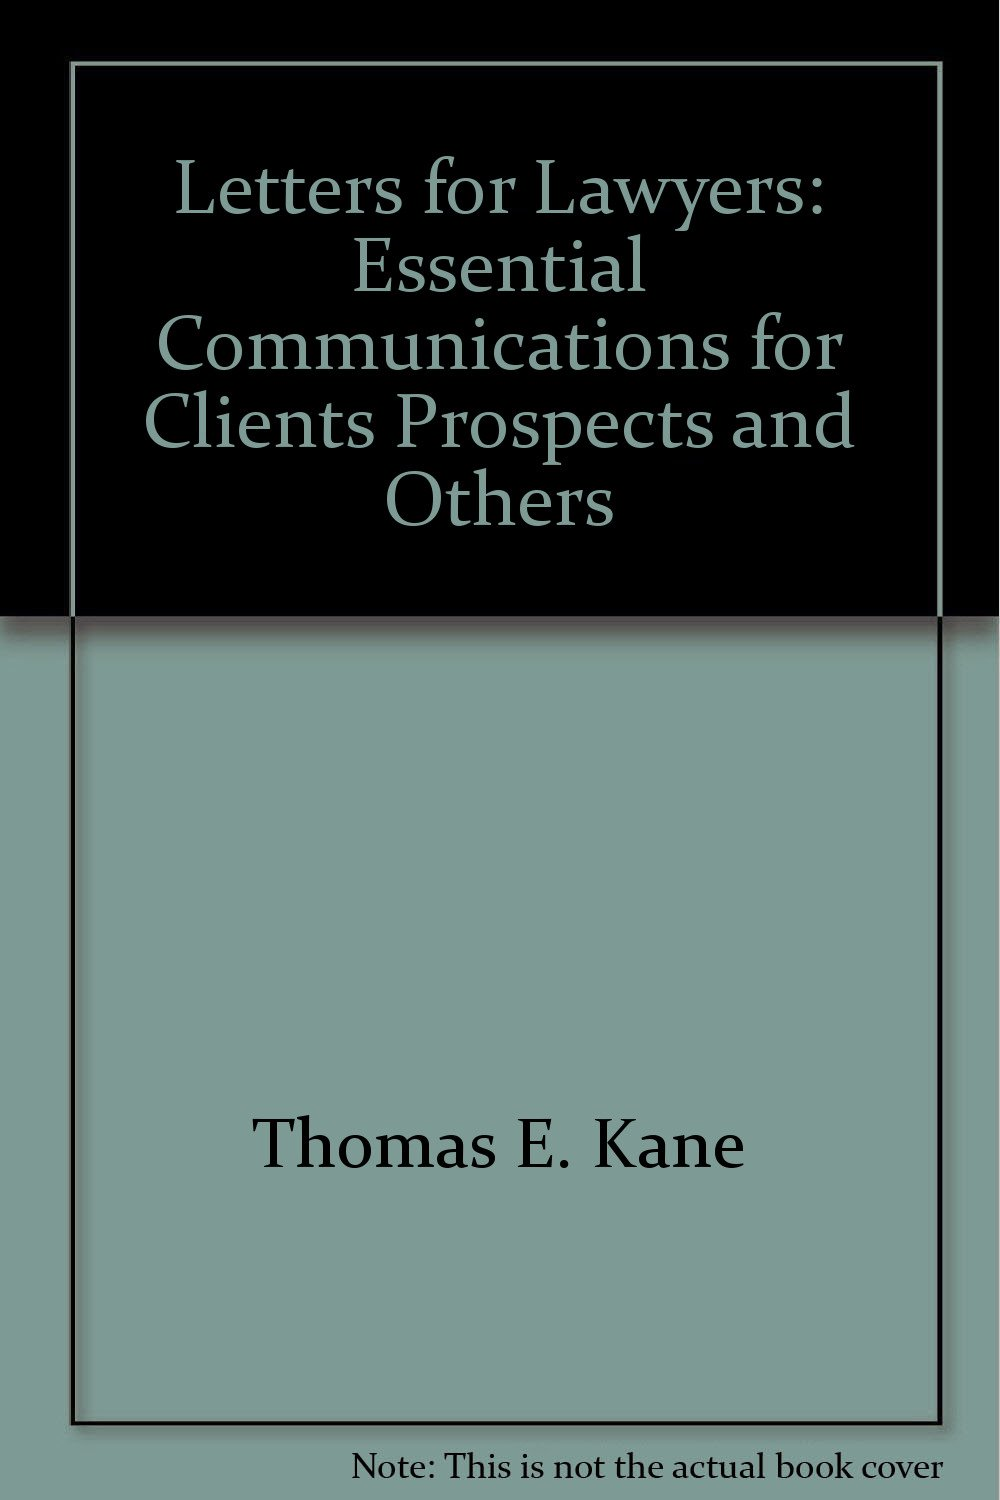 letters-for-lawyers-essential-communications-for-clients-prospects-and-others